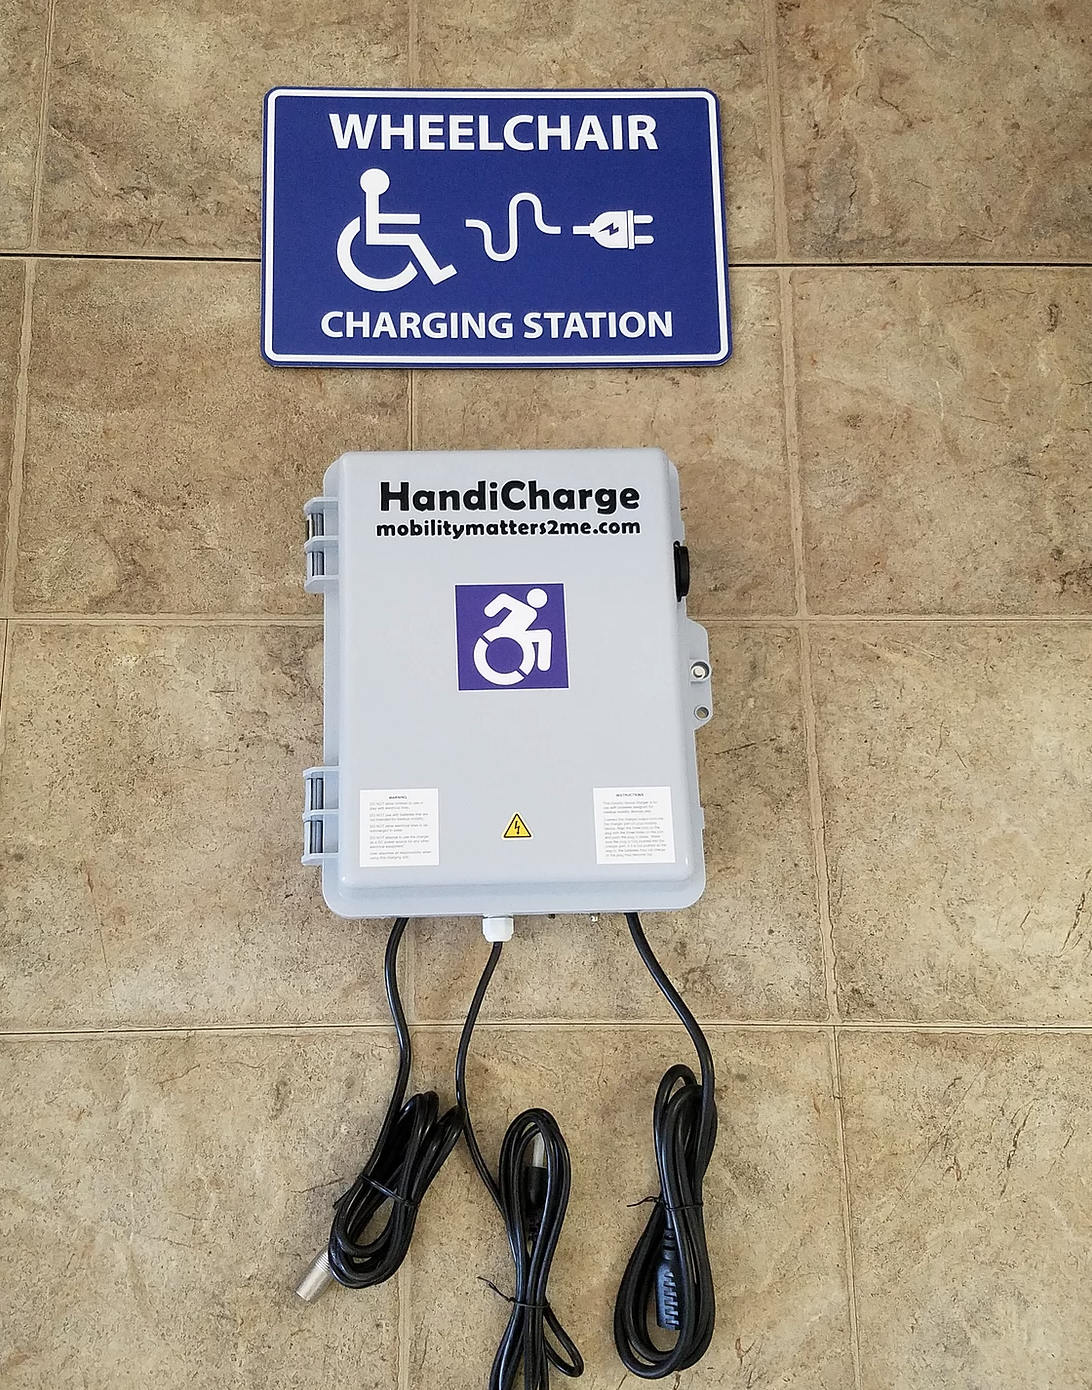 Electric wheelchair charging stations